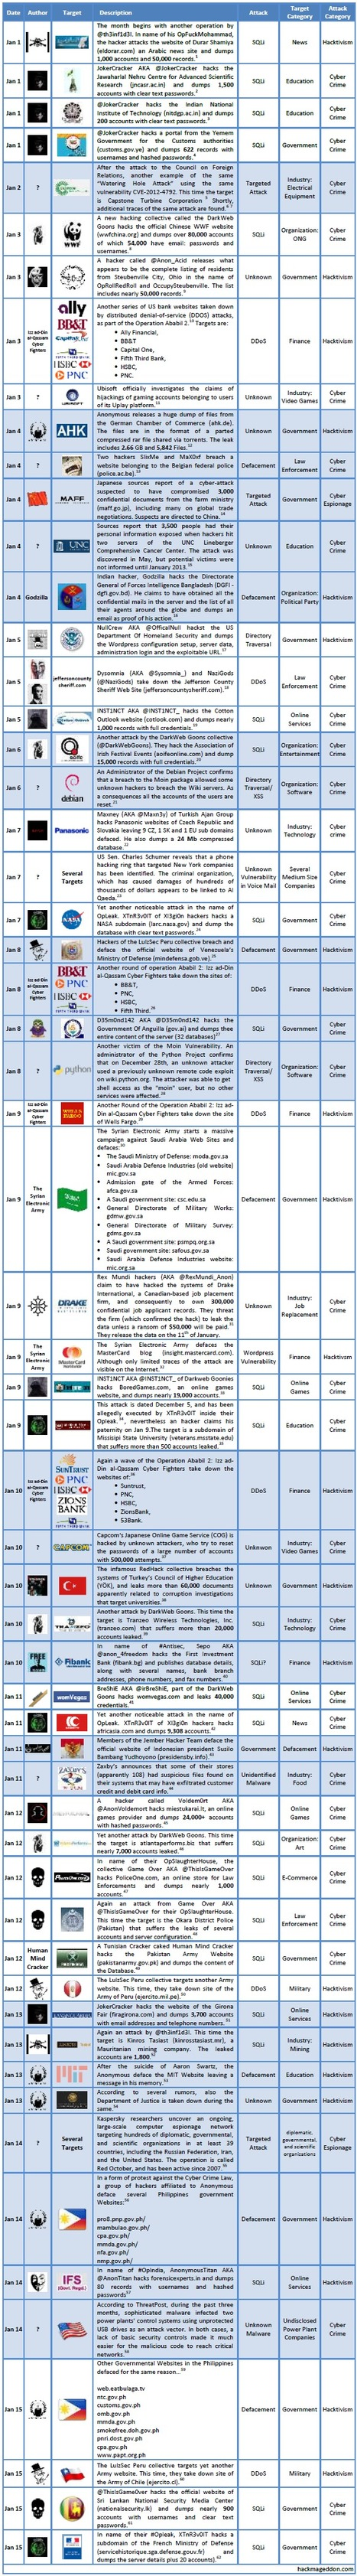 1-15 January 2013 Cyber Attacks Timeline | Criminology and Economic Theory | Scoop.it